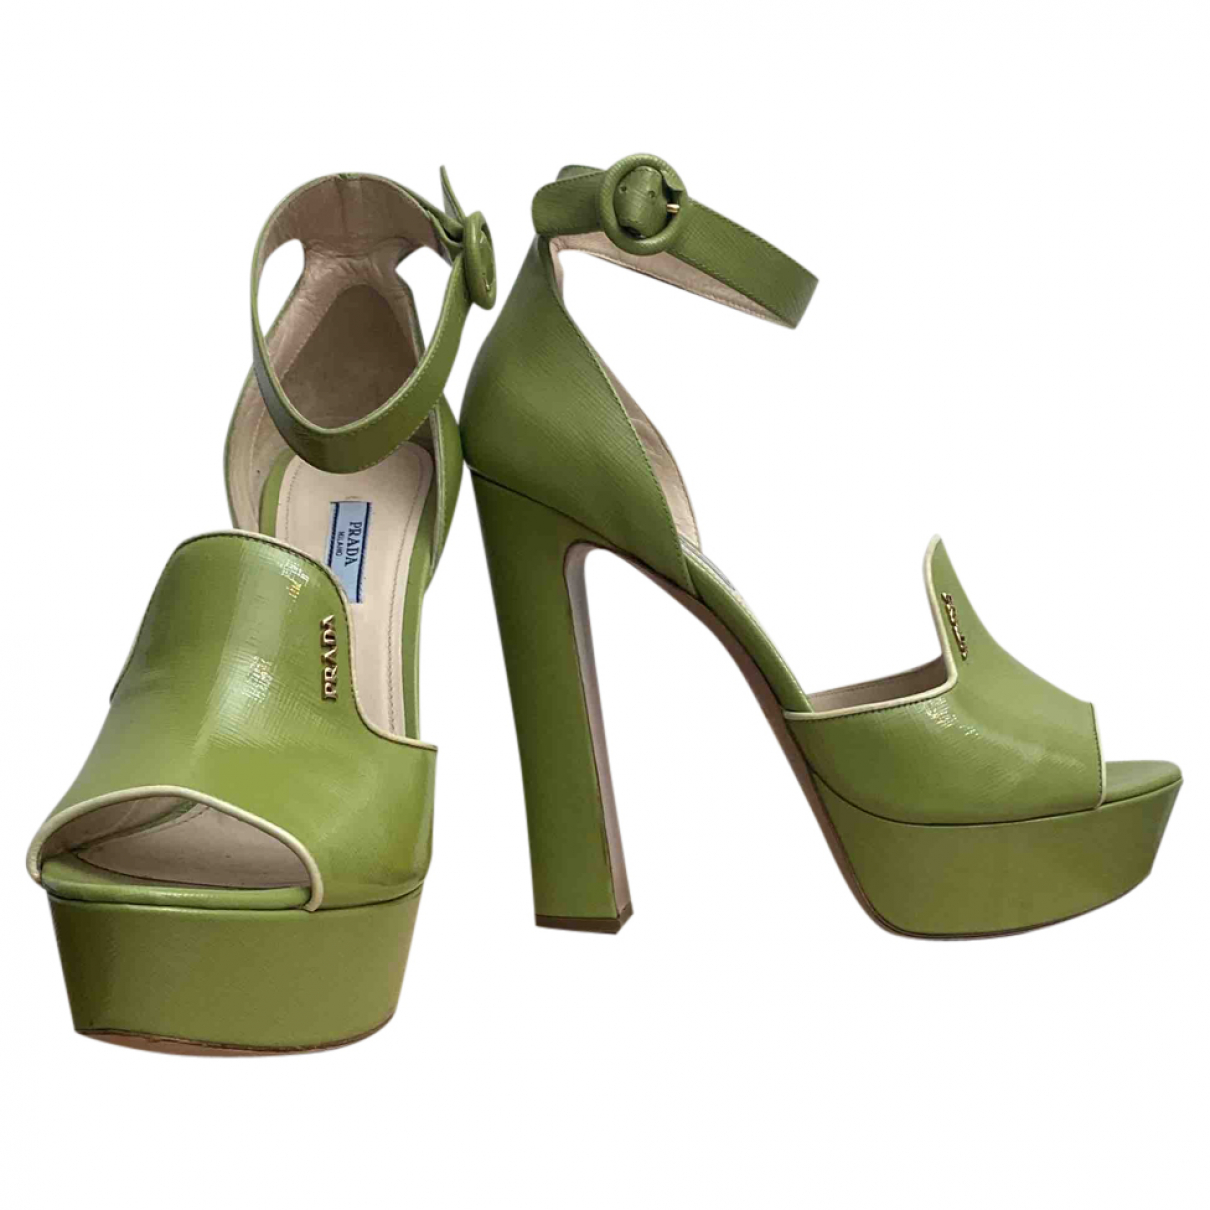 Prada N Green Leather Sandals for Women